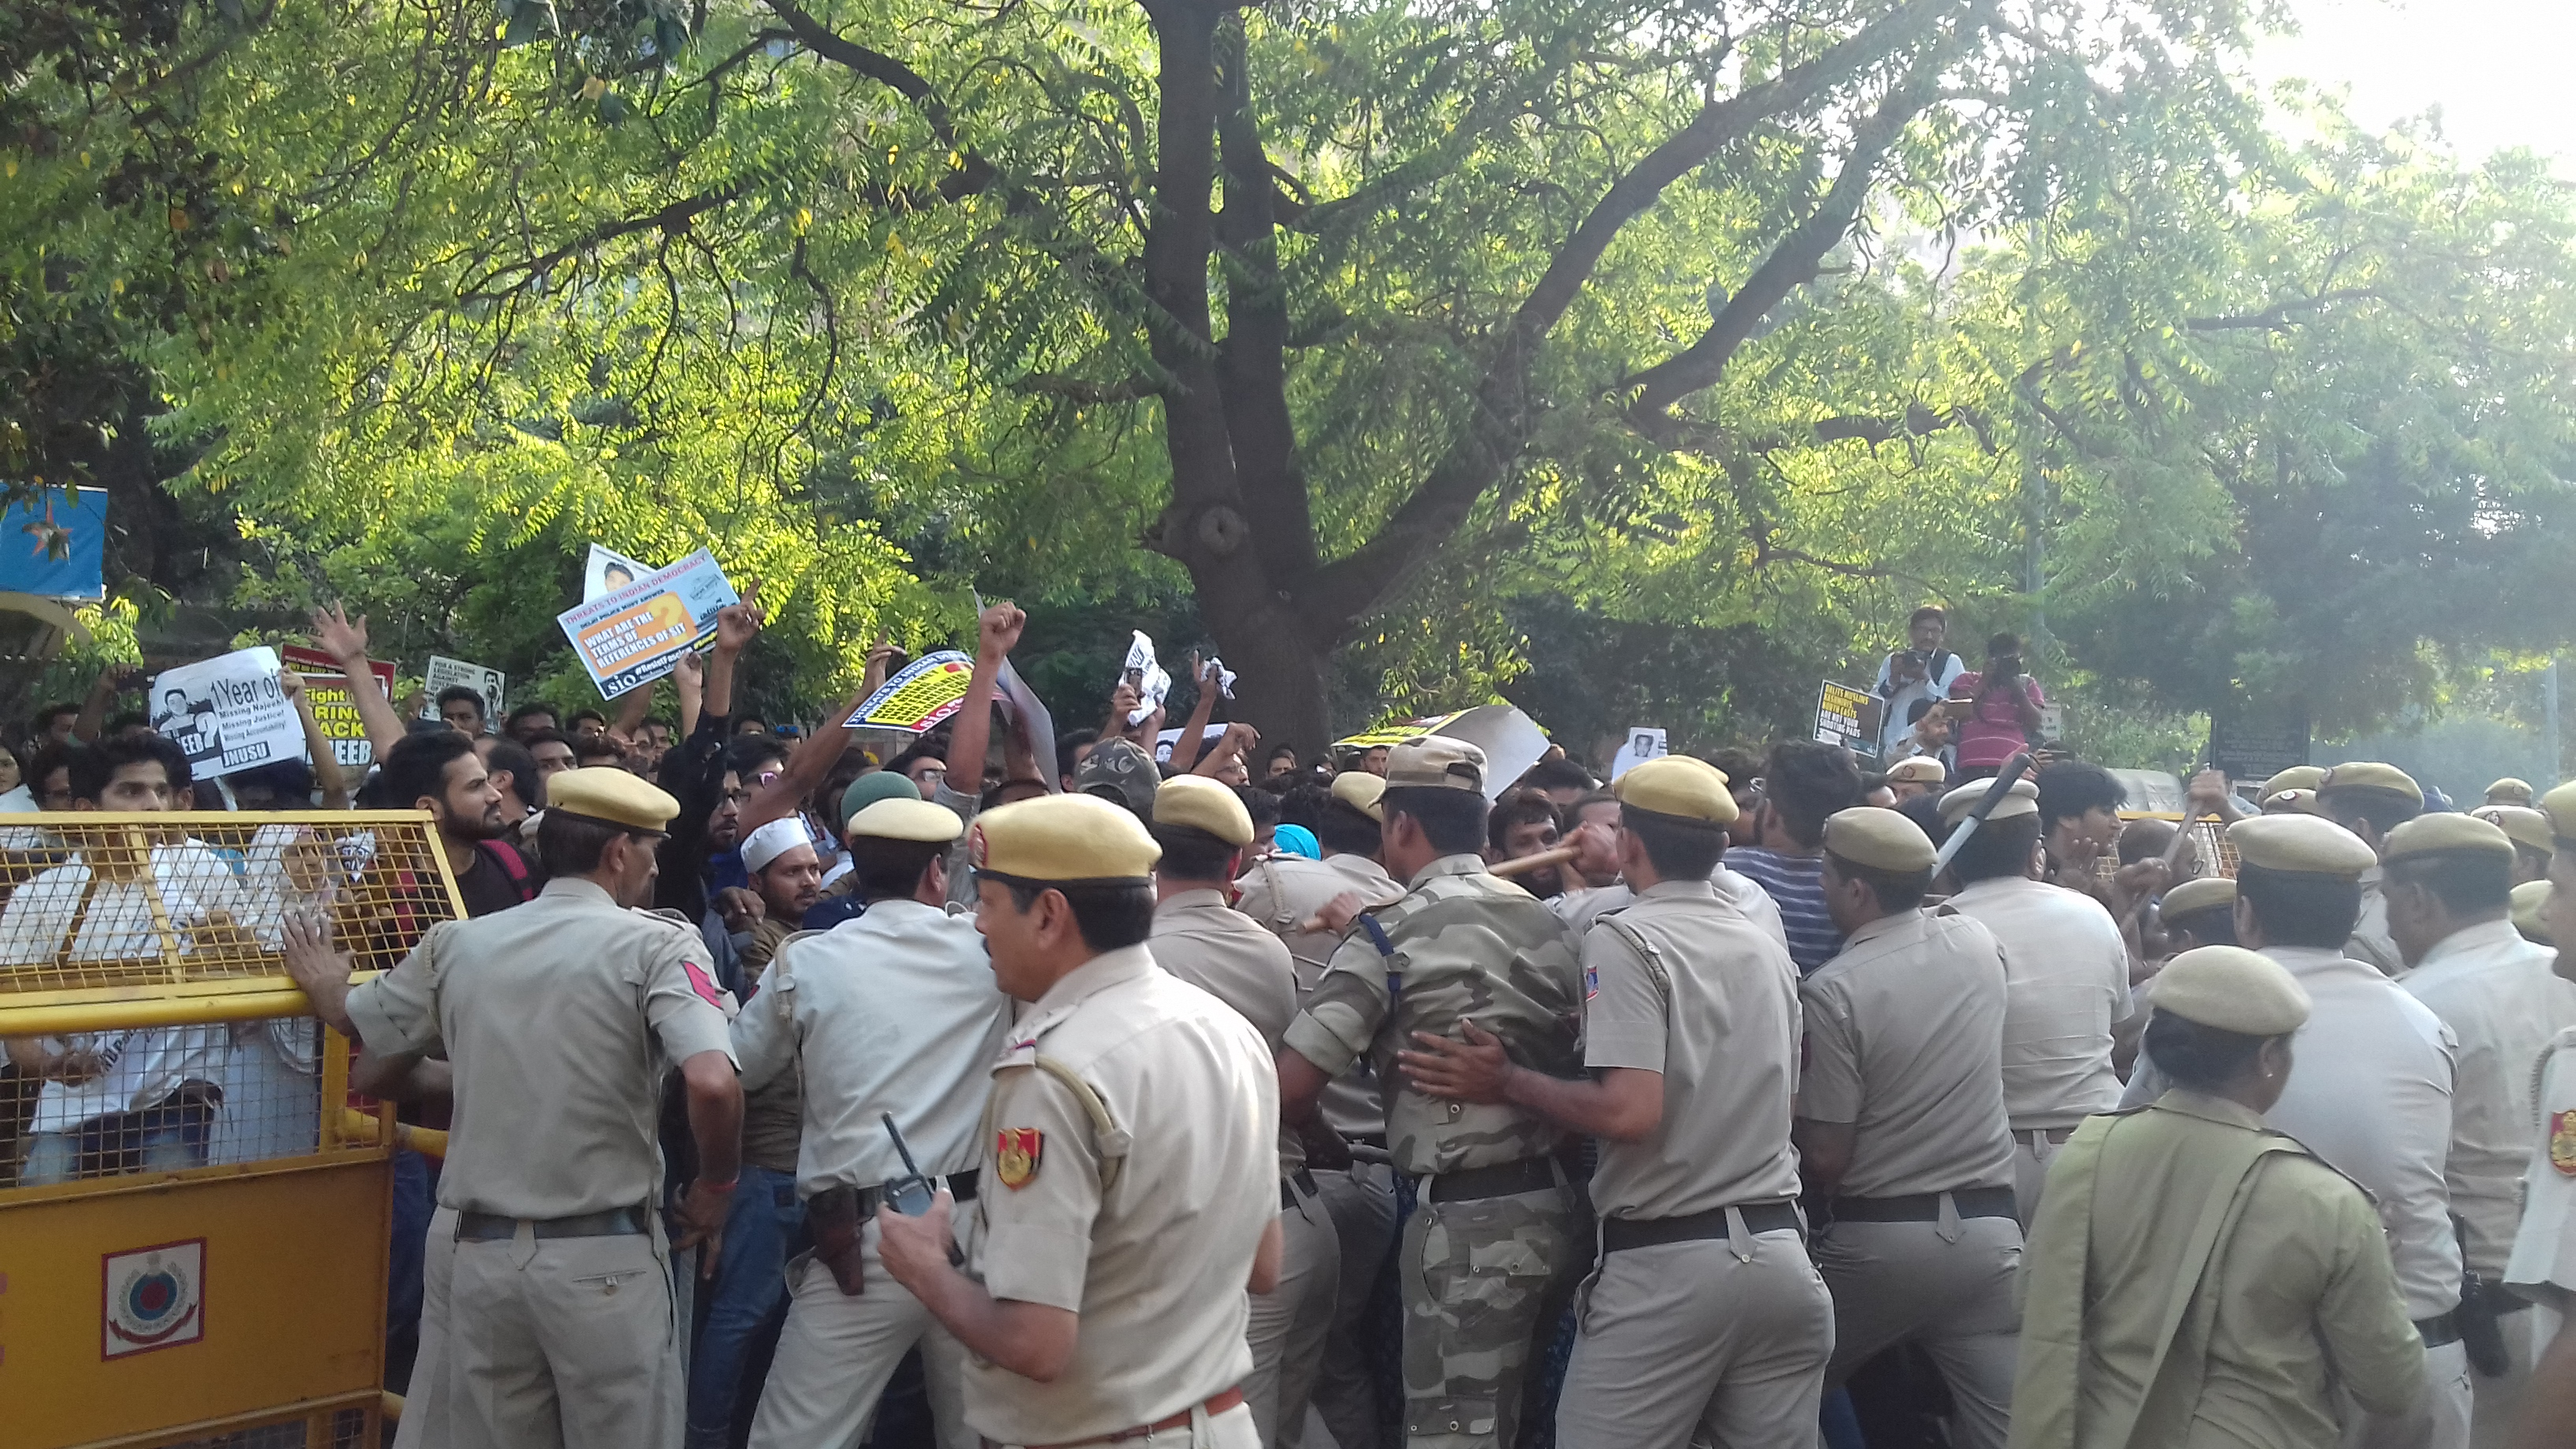 Students and police clash outside CBI headquarters. (Image Credit: Abhishek Dey)